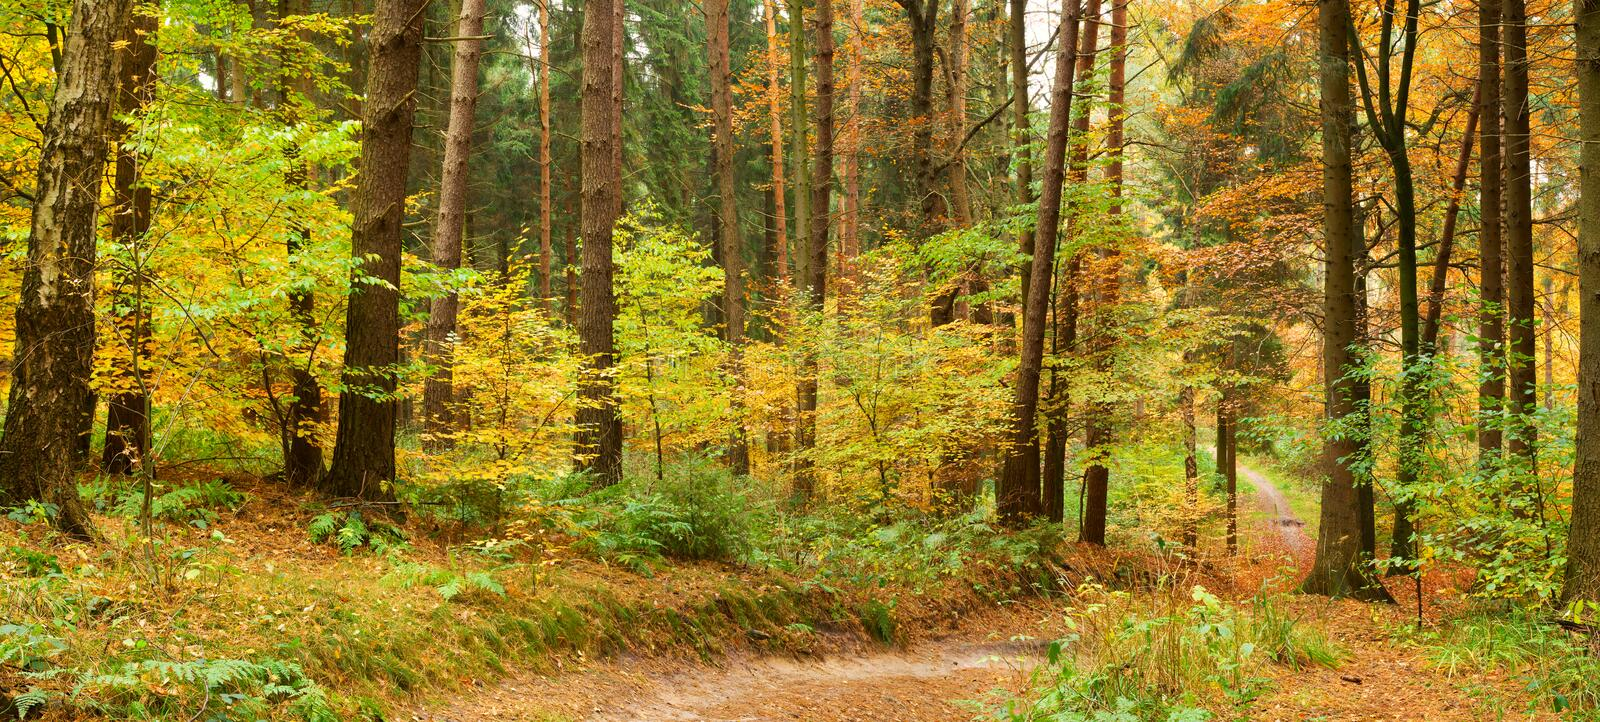 Path in mixed autumn forest. Panorama of a path in a mixed autumn forest with colorful deciduous trees and conifers royalty free stock photos